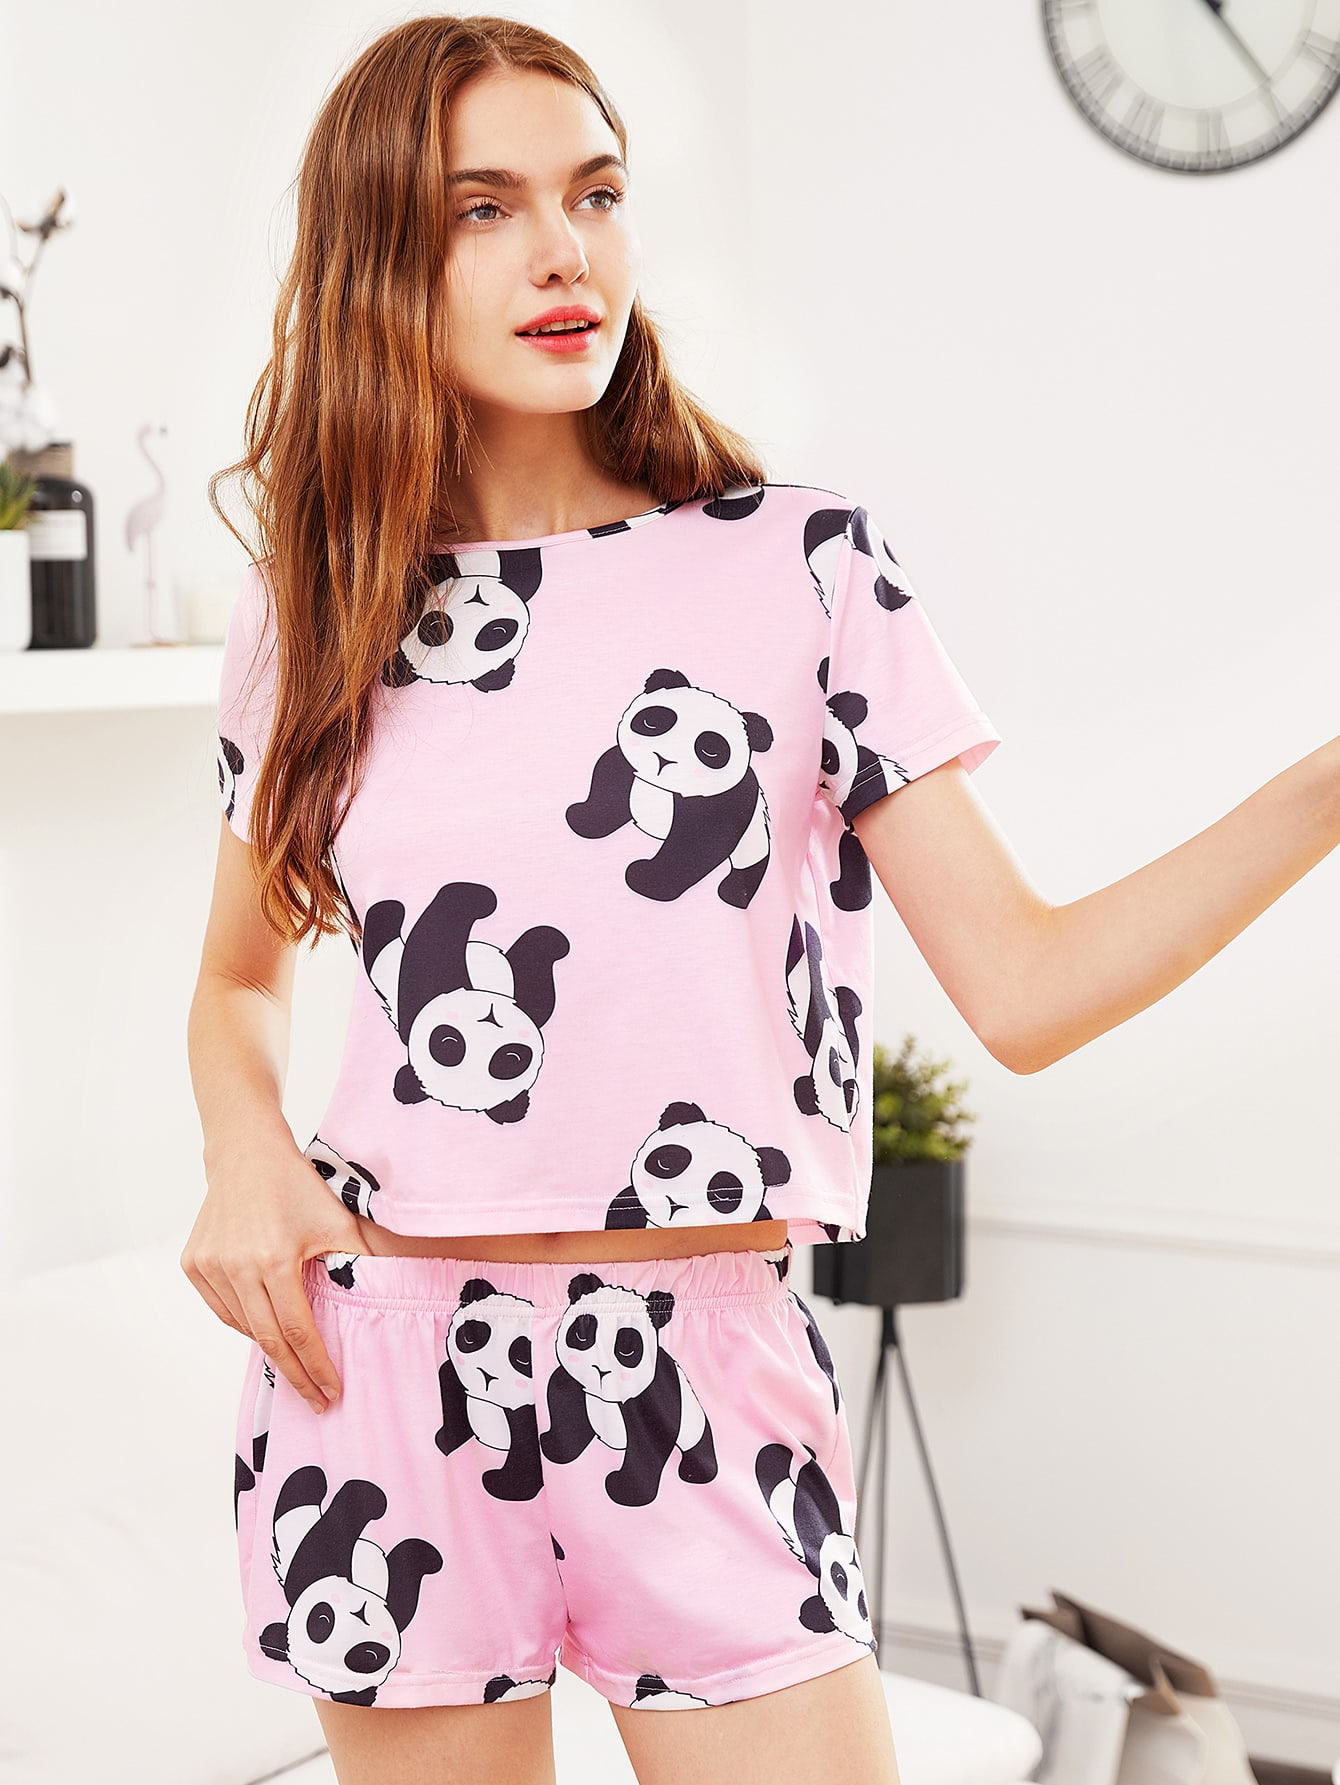 Panda Print Tee And Shorts Pajama Set heart print tee and striped shorts pajama set